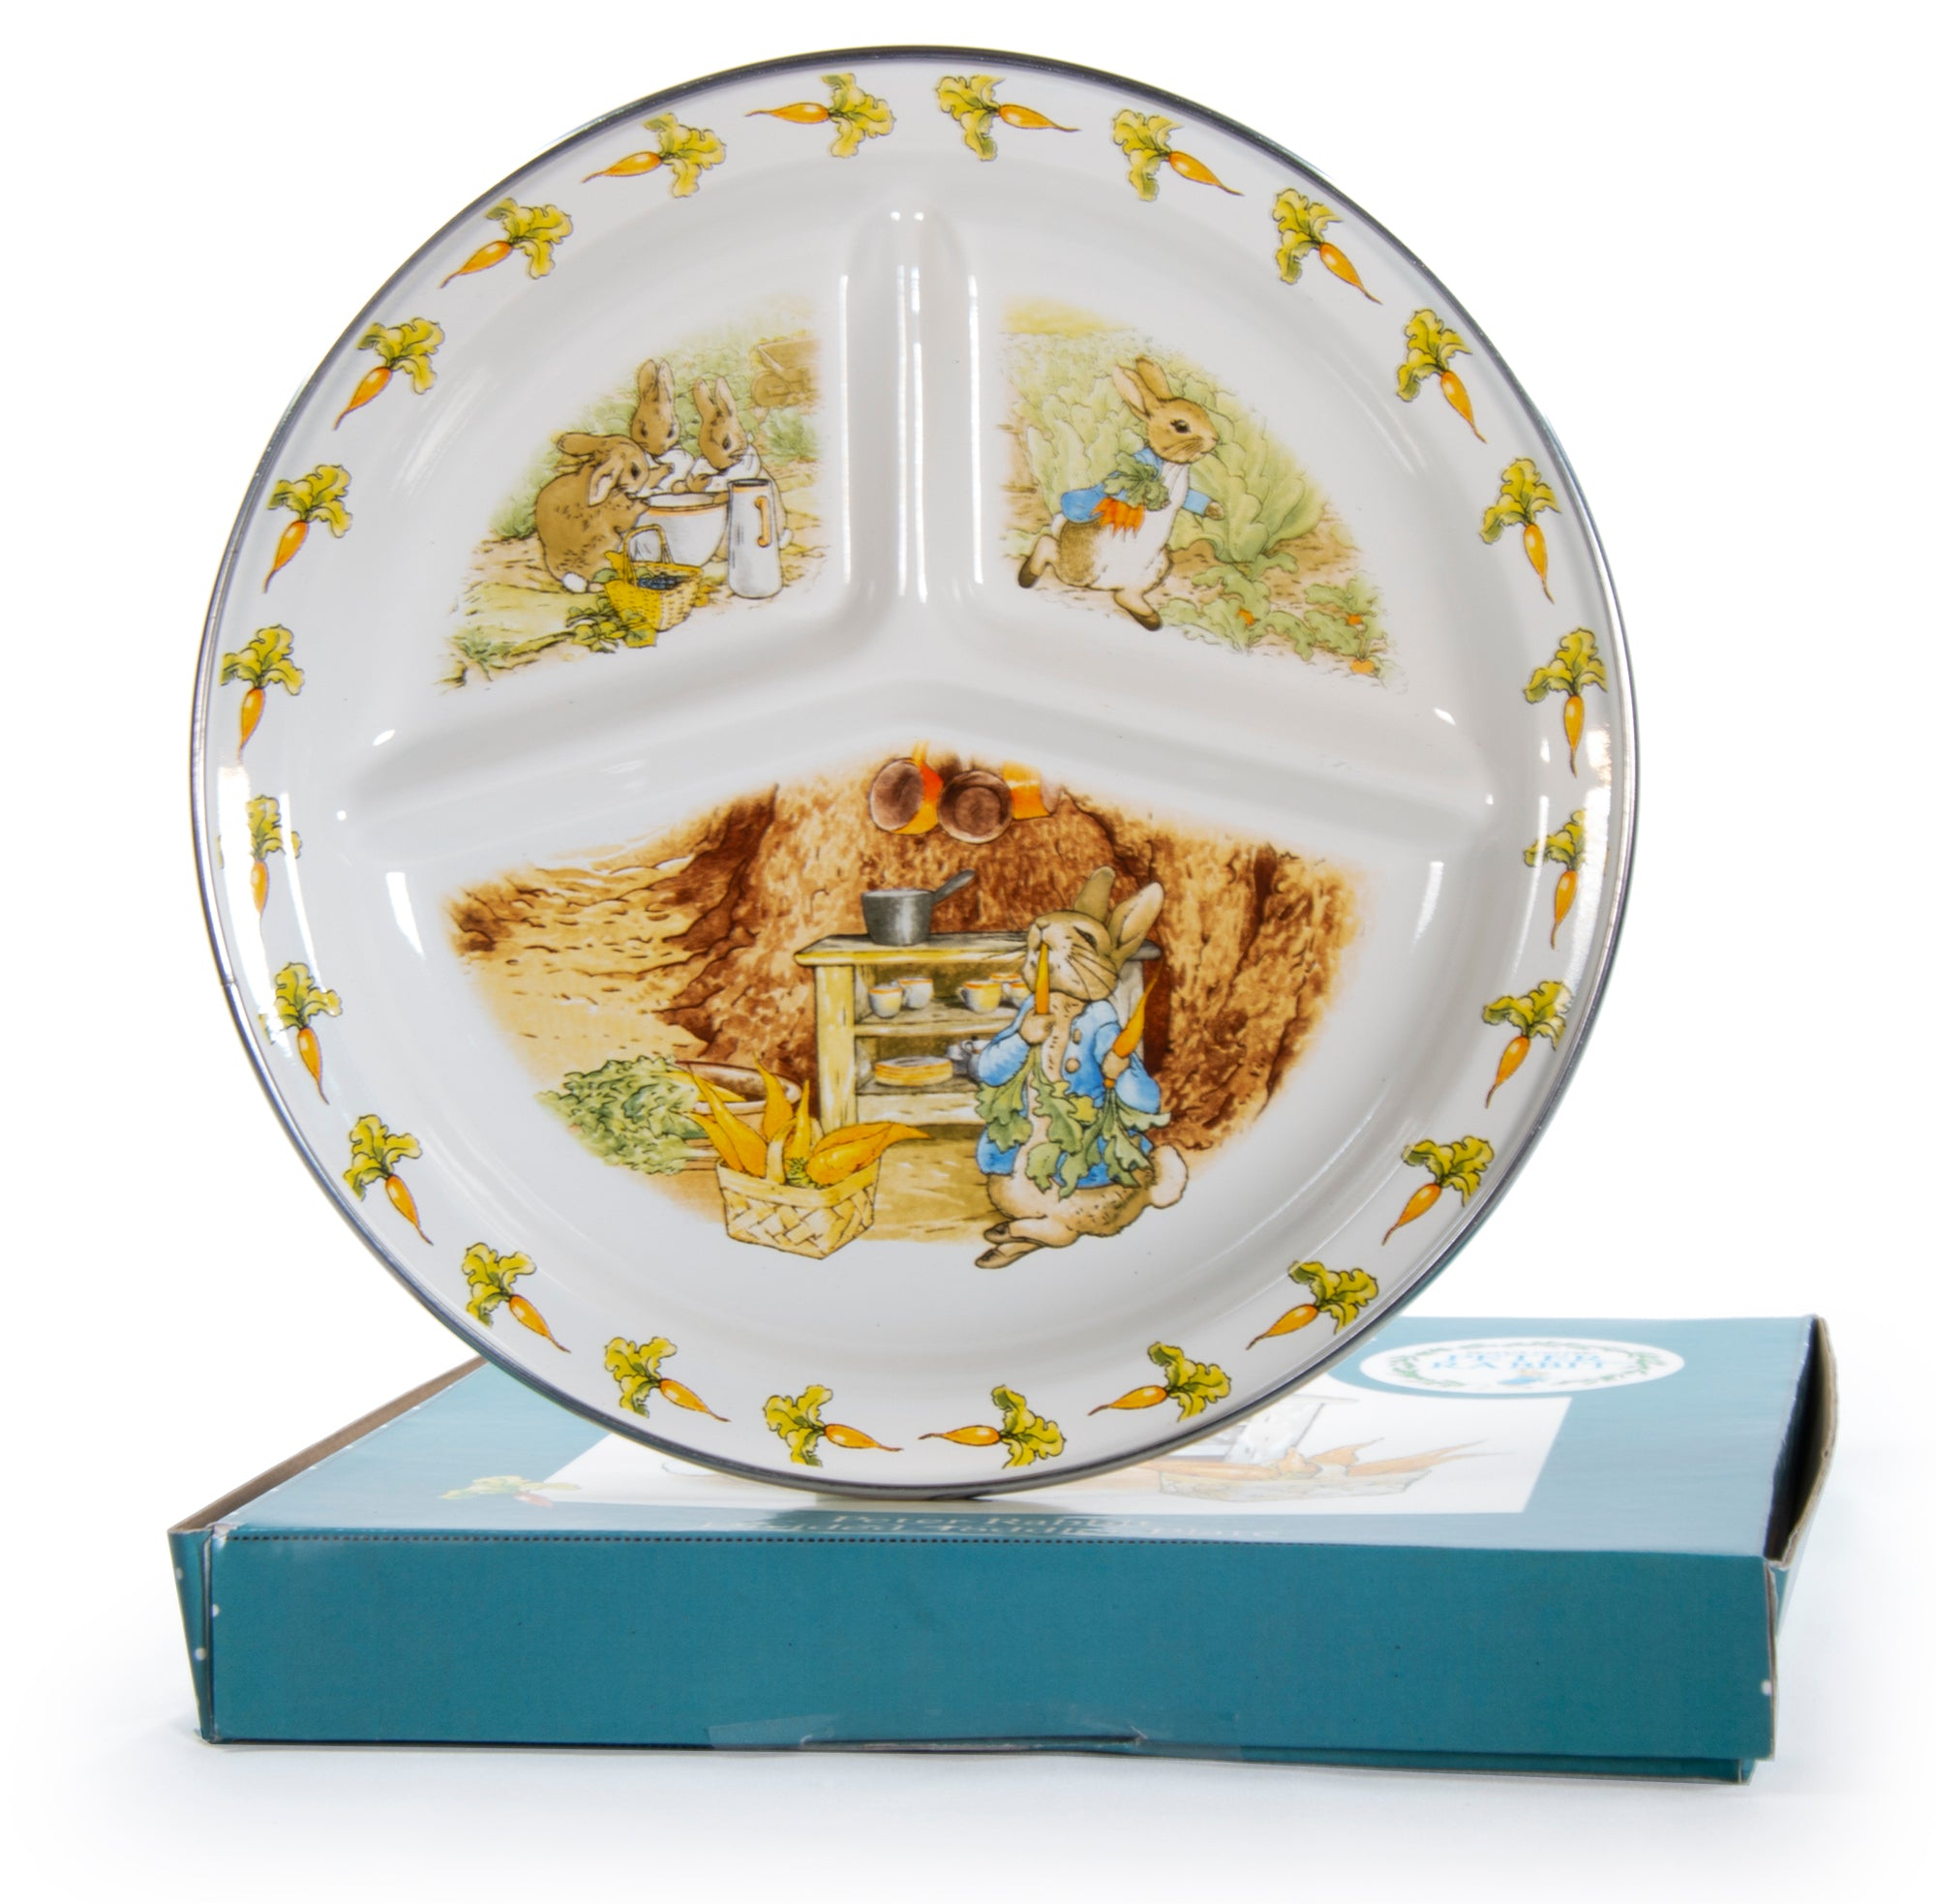 BP16 - Peter Rabbit Toddler Plate Image 1